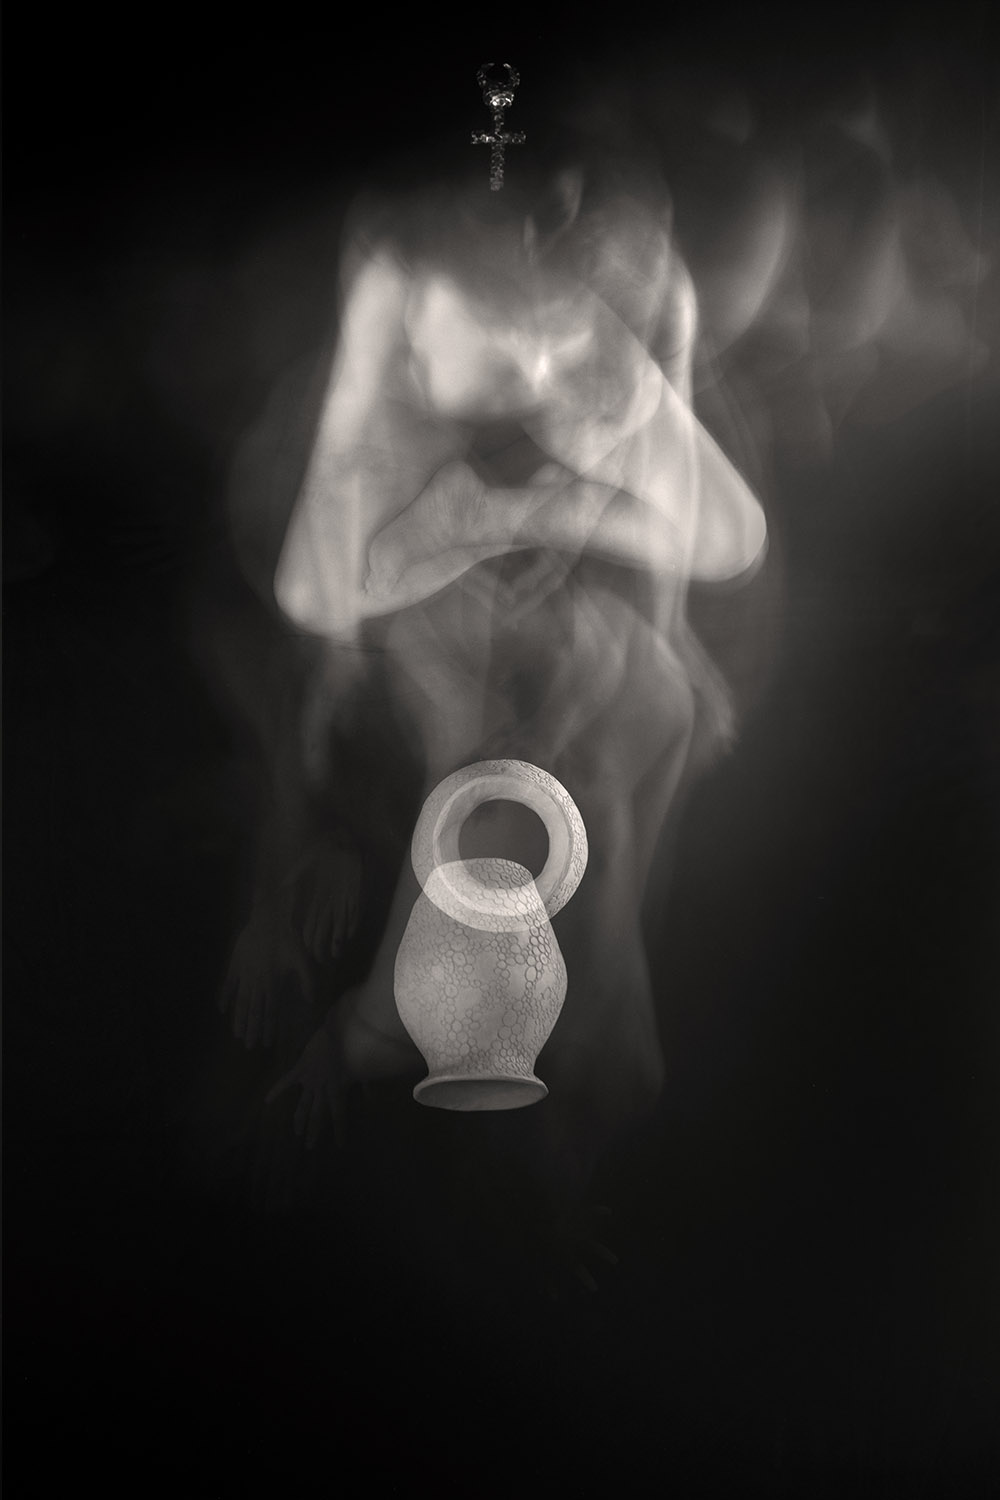 Carla Janse van Rensburg Untitled (10 minute exposure of Ancestry Vase Consecration Ritual) 2018 digital photograph archival ink on Hahnemuhle, 1of20 35.5 x 24.2 cm